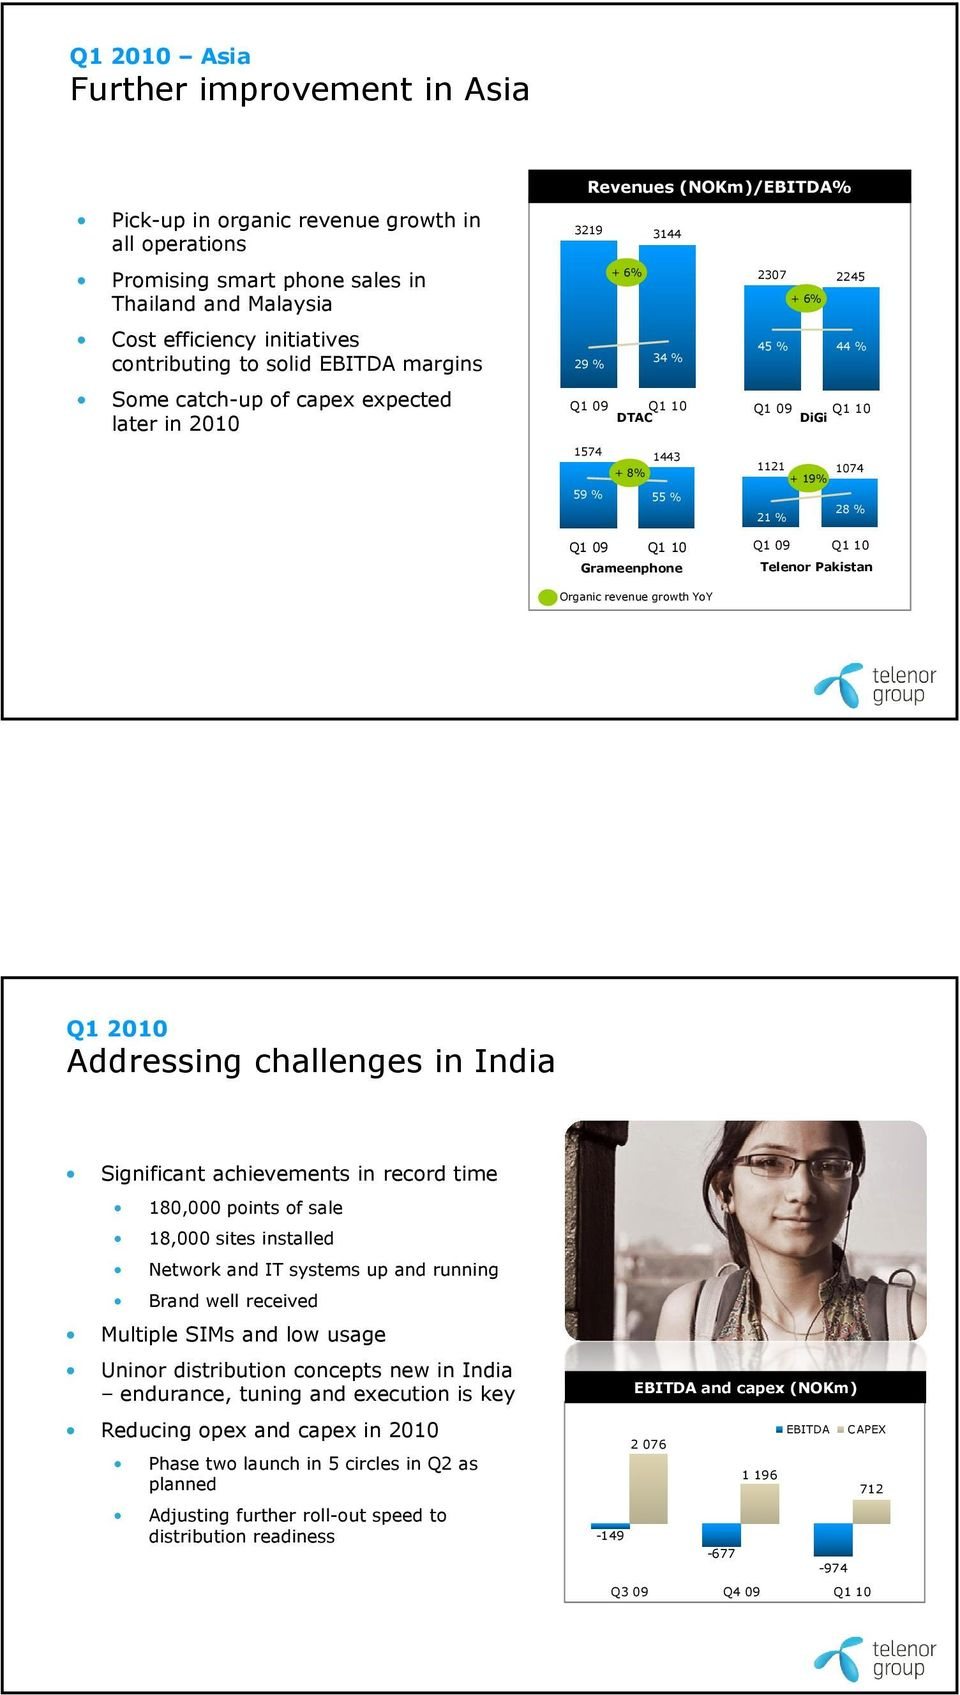 55 % 28 % 21 % Q1 09 Q1 10 Grameenphone Q1 09 Q1 10 Telenor Pakistan Organic revenue growth YoY Addressing challenges in India Significant achievements in record time 180,000 points of sale 18,000